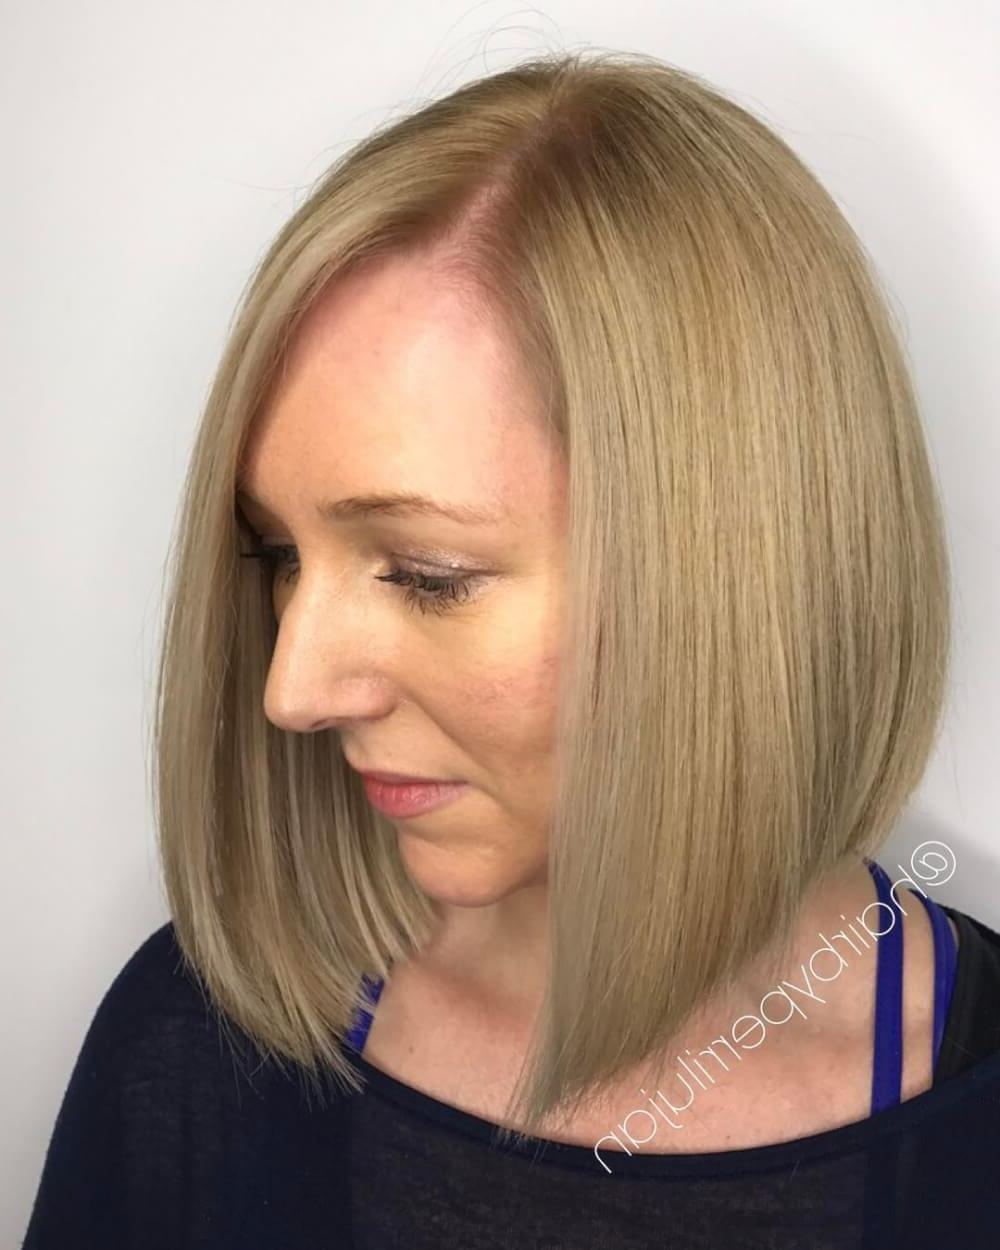 49 Chic Short Bob Hairstyles & Haircuts For Women In 2018 Throughout Short Straight Bob Hairstyles (View 11 of 20)